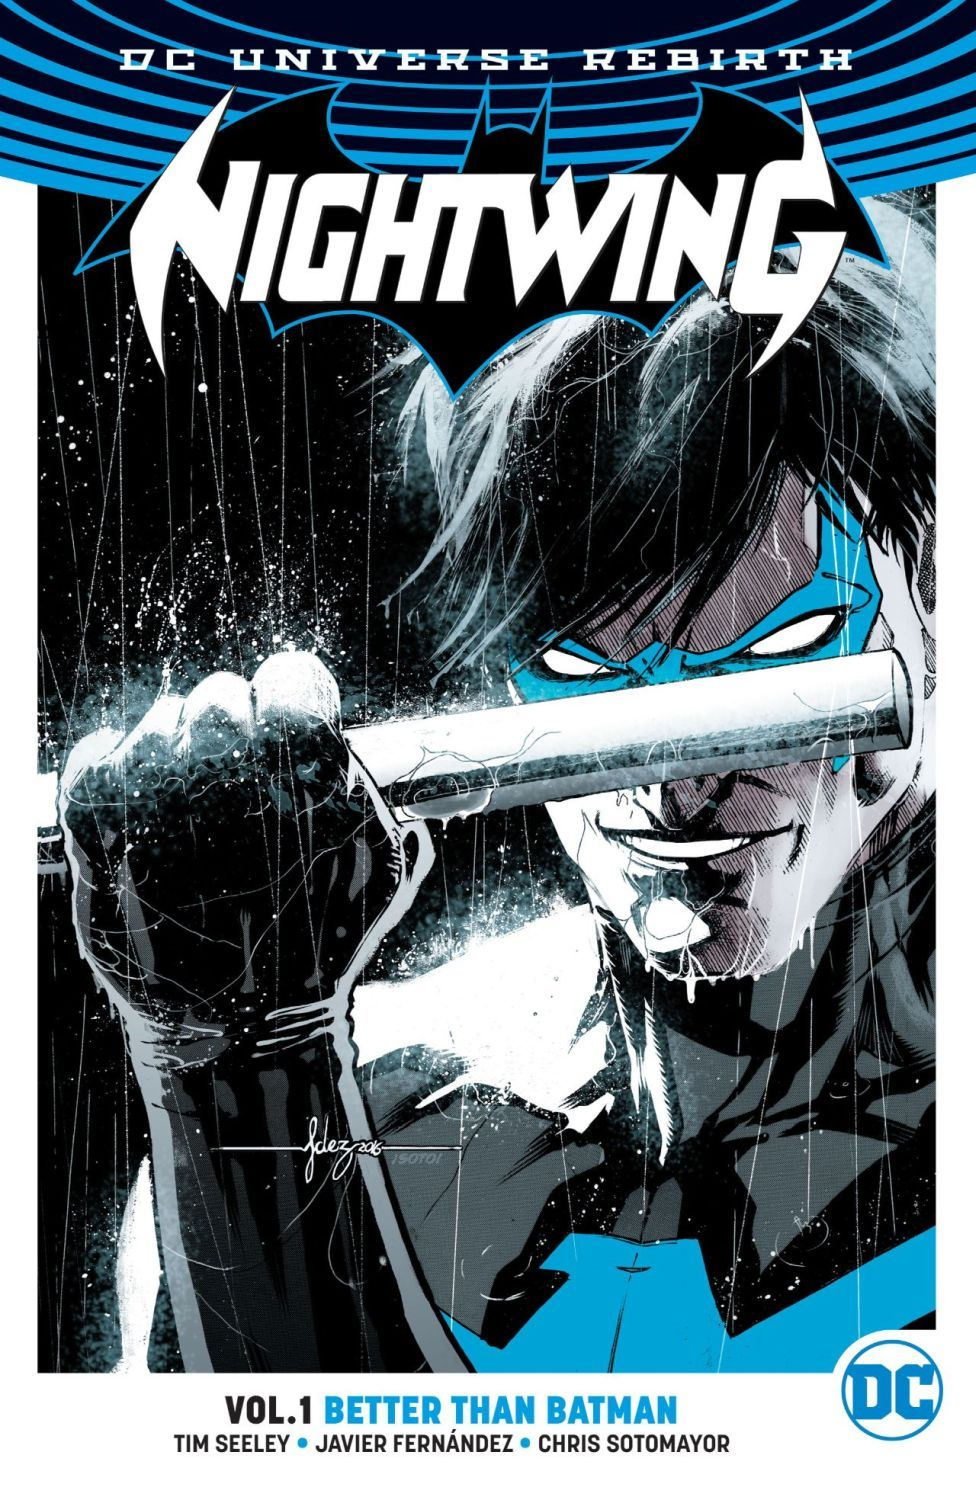 Nightwing Vol. 1: Better Than Batman (DC Universe Rebirth) - 1